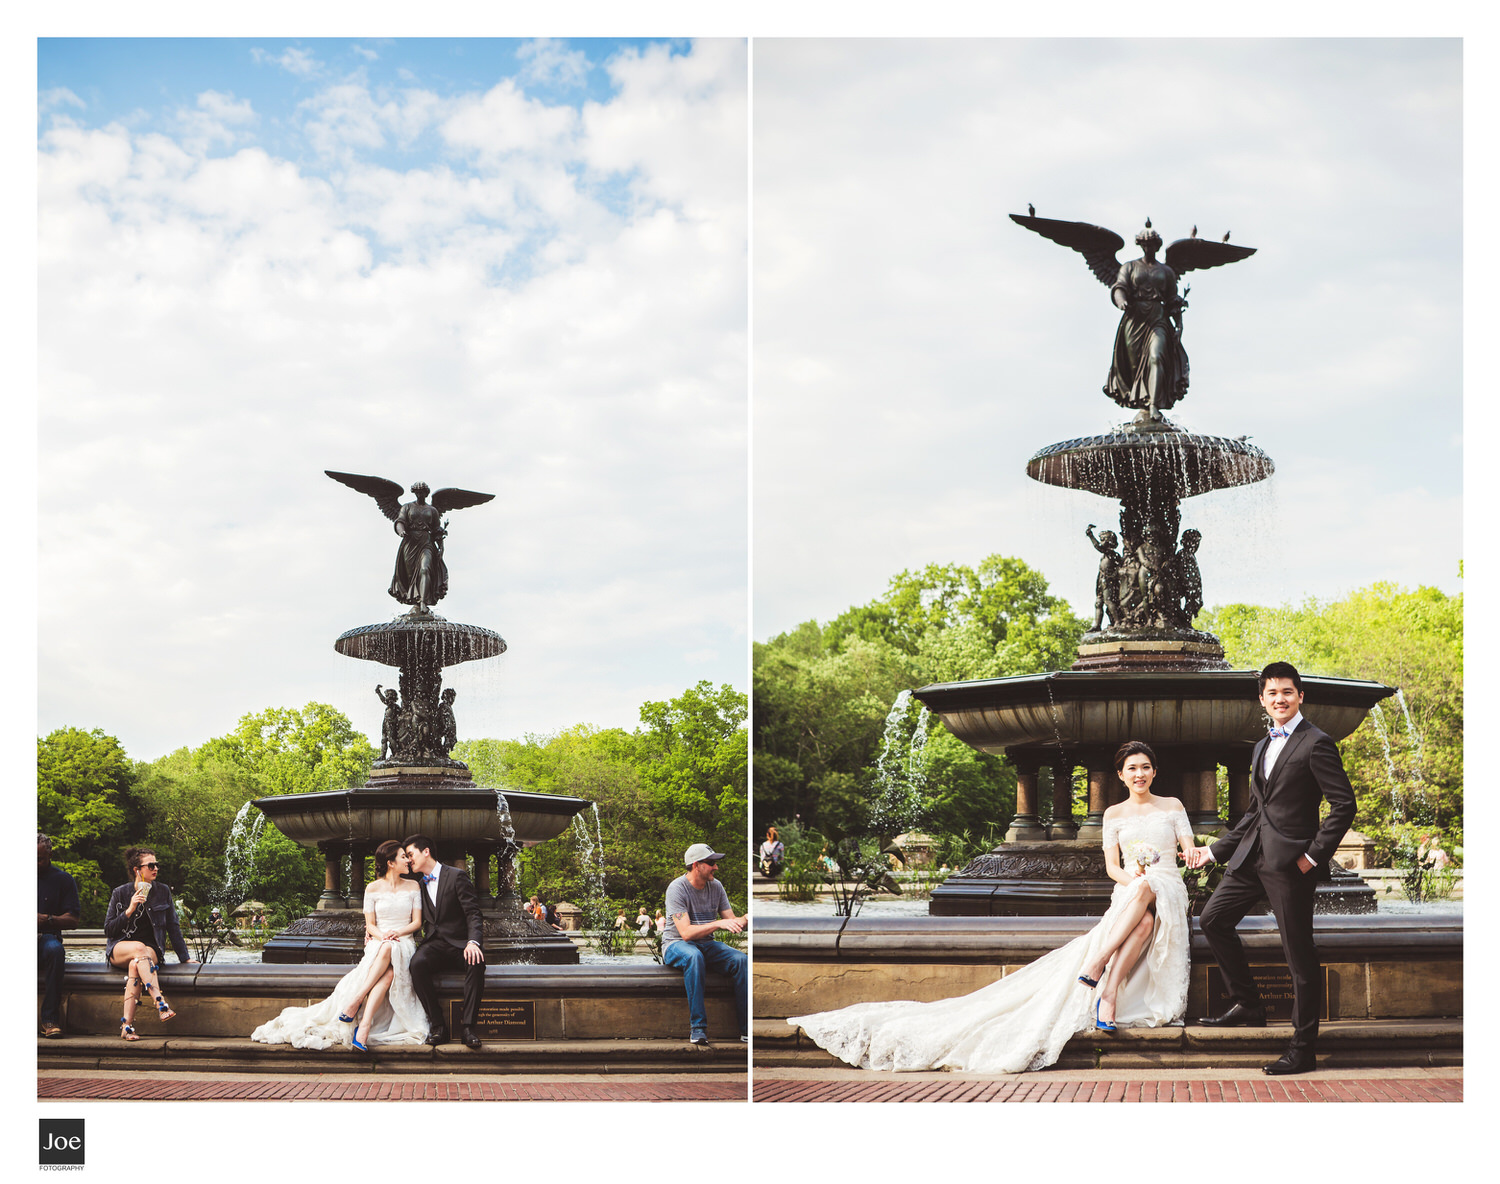 joefotography-24-newyork-central-park-pre-wedding-cindy-larry.jpg